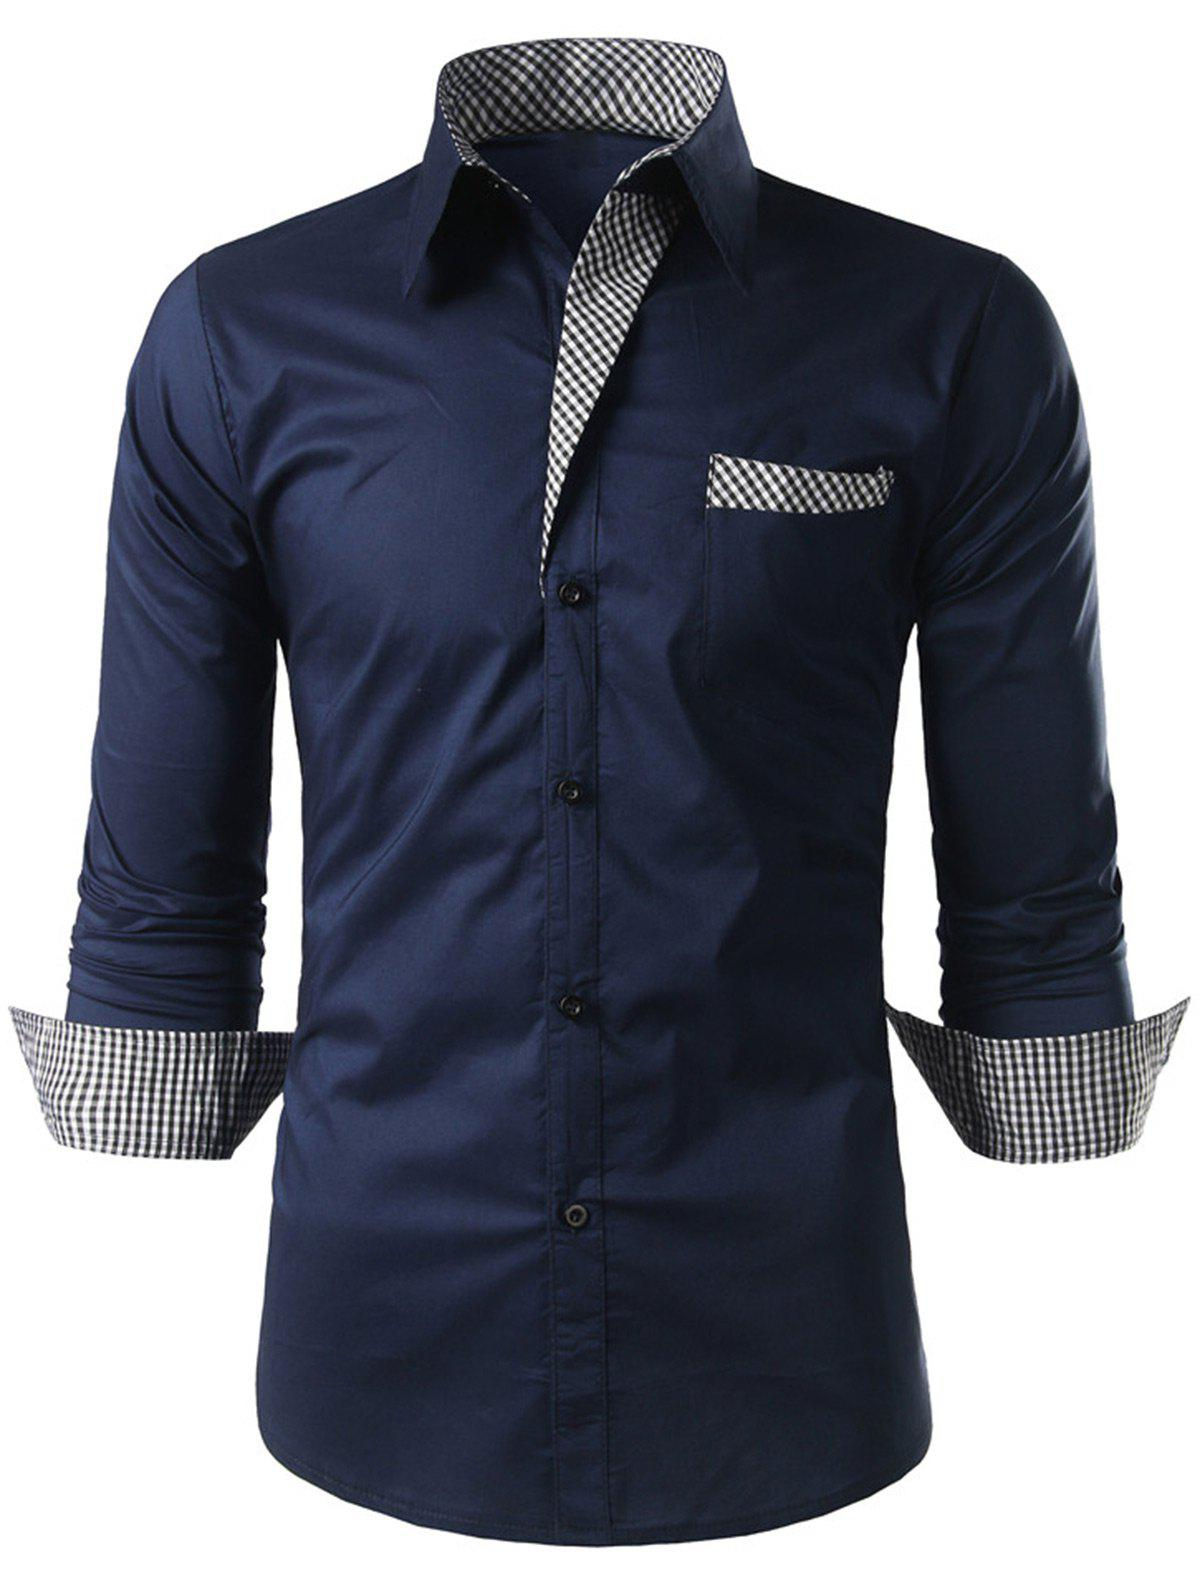 Plaid Trim Long Sleeve ShirtMEN<br><br>Size: XL; Color: CADETBLUE; Shirts Type: Casual Shirts; Material: Polyester; Sleeve Length: Full; Collar: Turn-down Collar; Pattern Type: Plaid; Weight: 0.2500kg; Package Contents: 1 x Shirt;